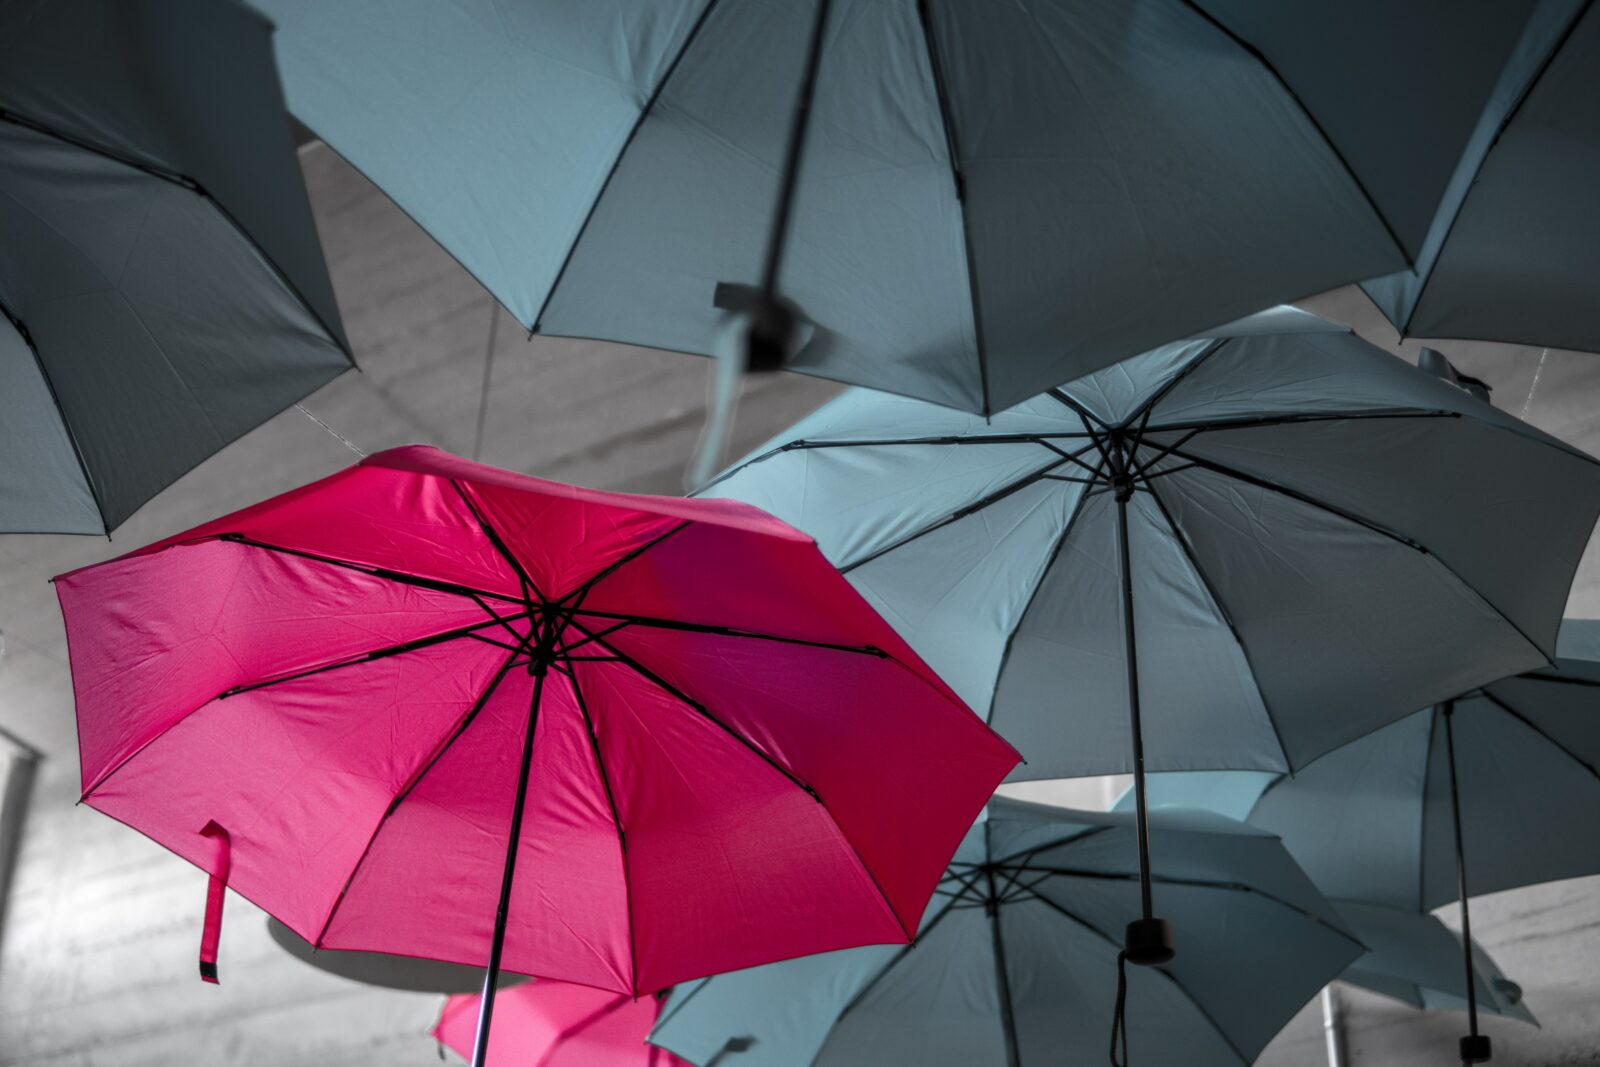 """A pink umbrella standing out against the black, """"normal umbrellas"""